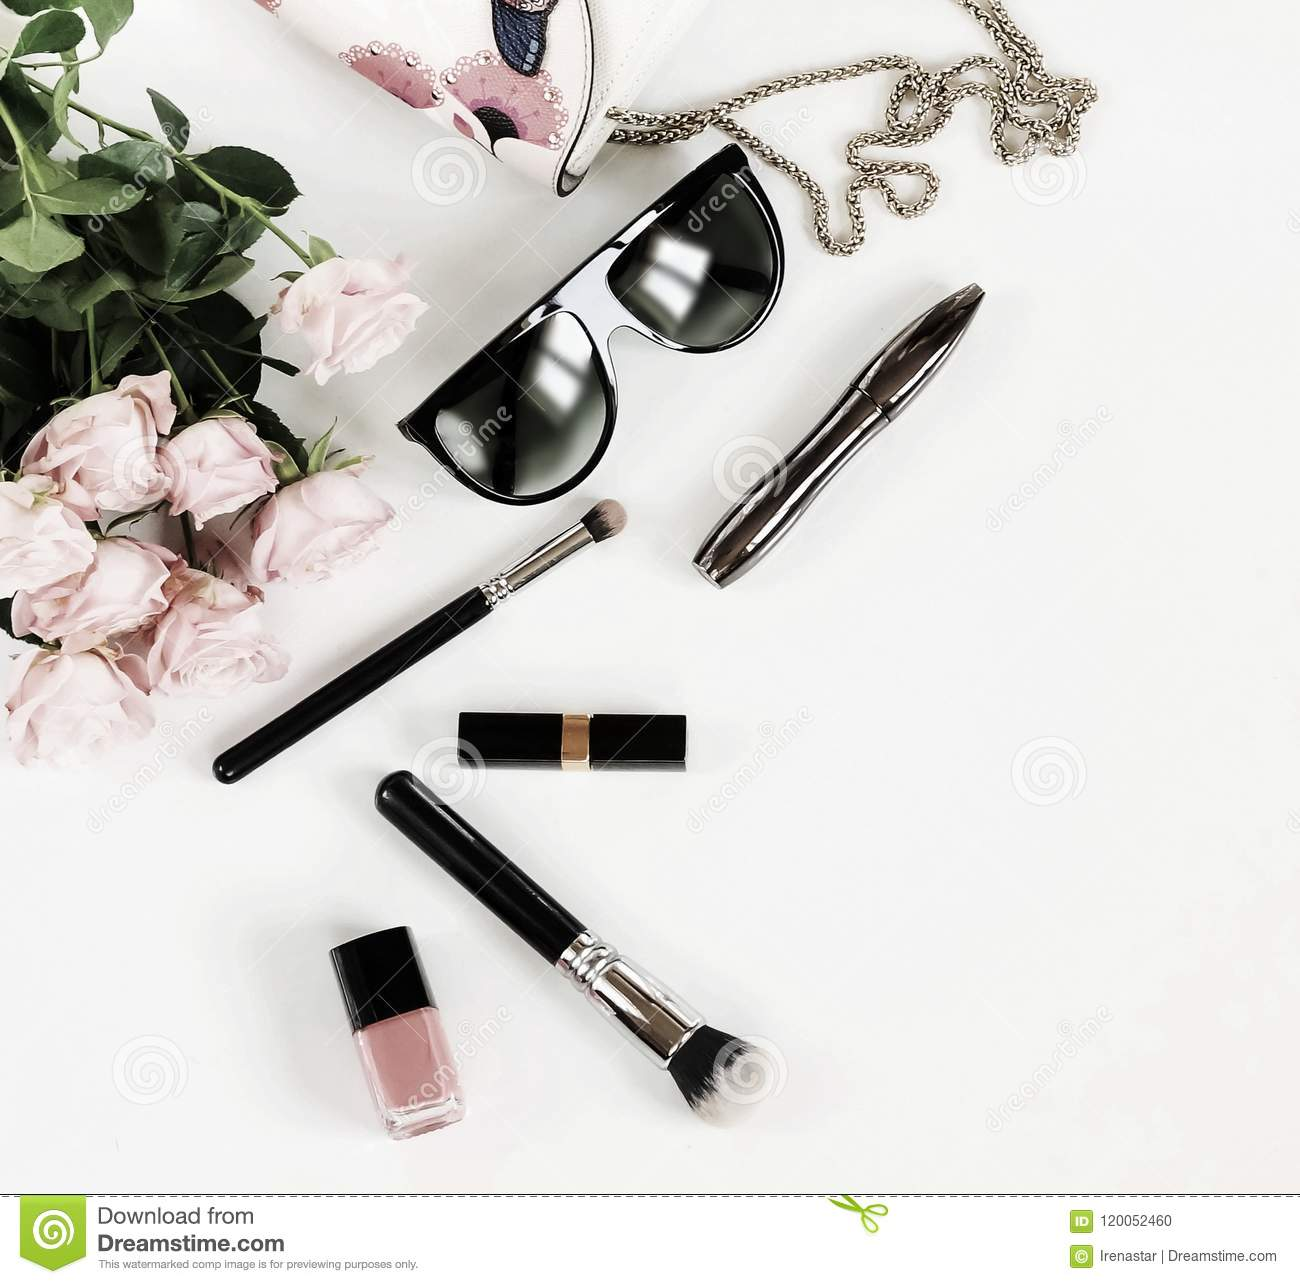 Fashion background. Female fashionable stylish accessories .Bouwuet of pale pink roses